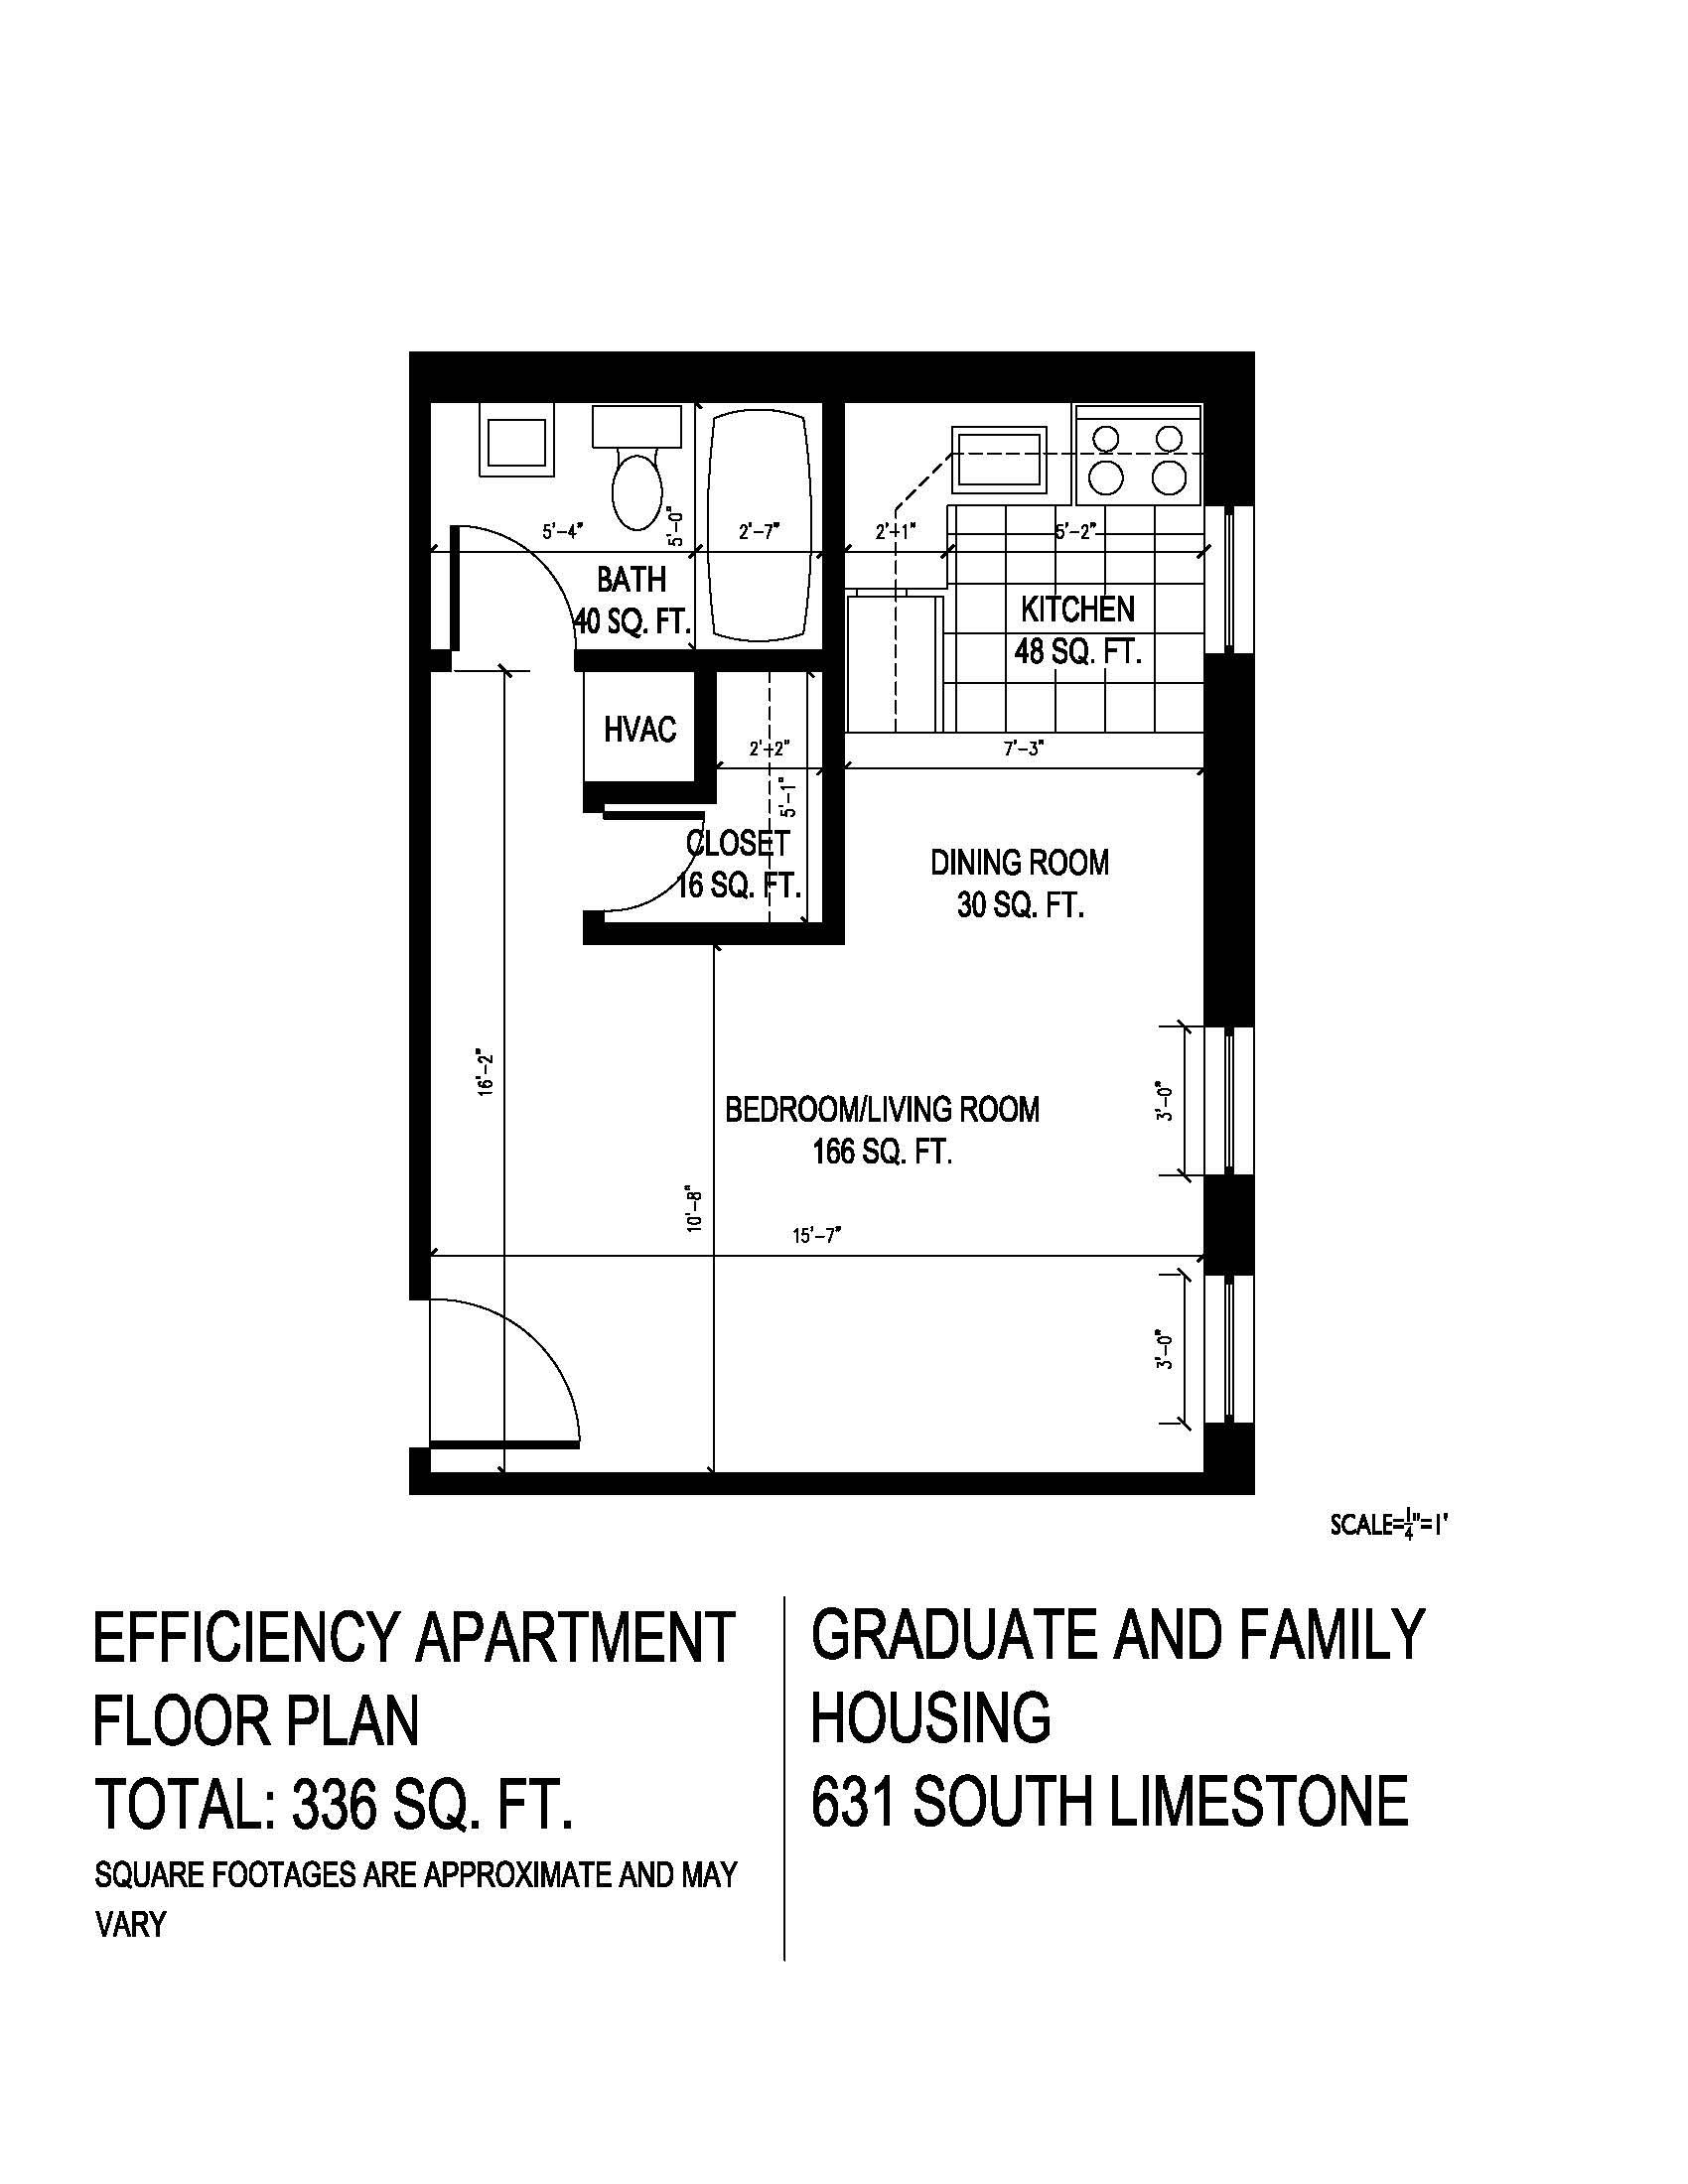 Floor plan for efficieny unit at 625 South Limestone Street